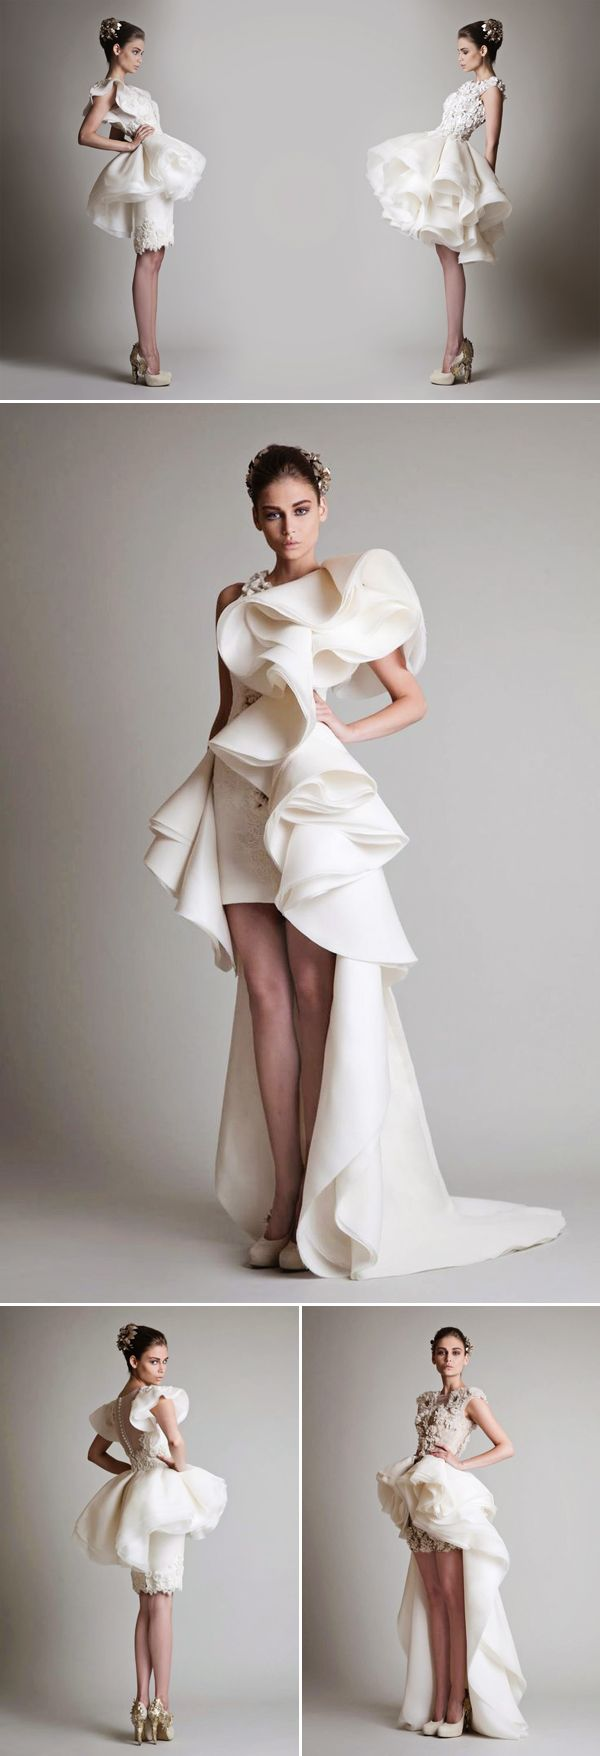 32 Chic Short Wedding Dresses - Krikor Jabotian